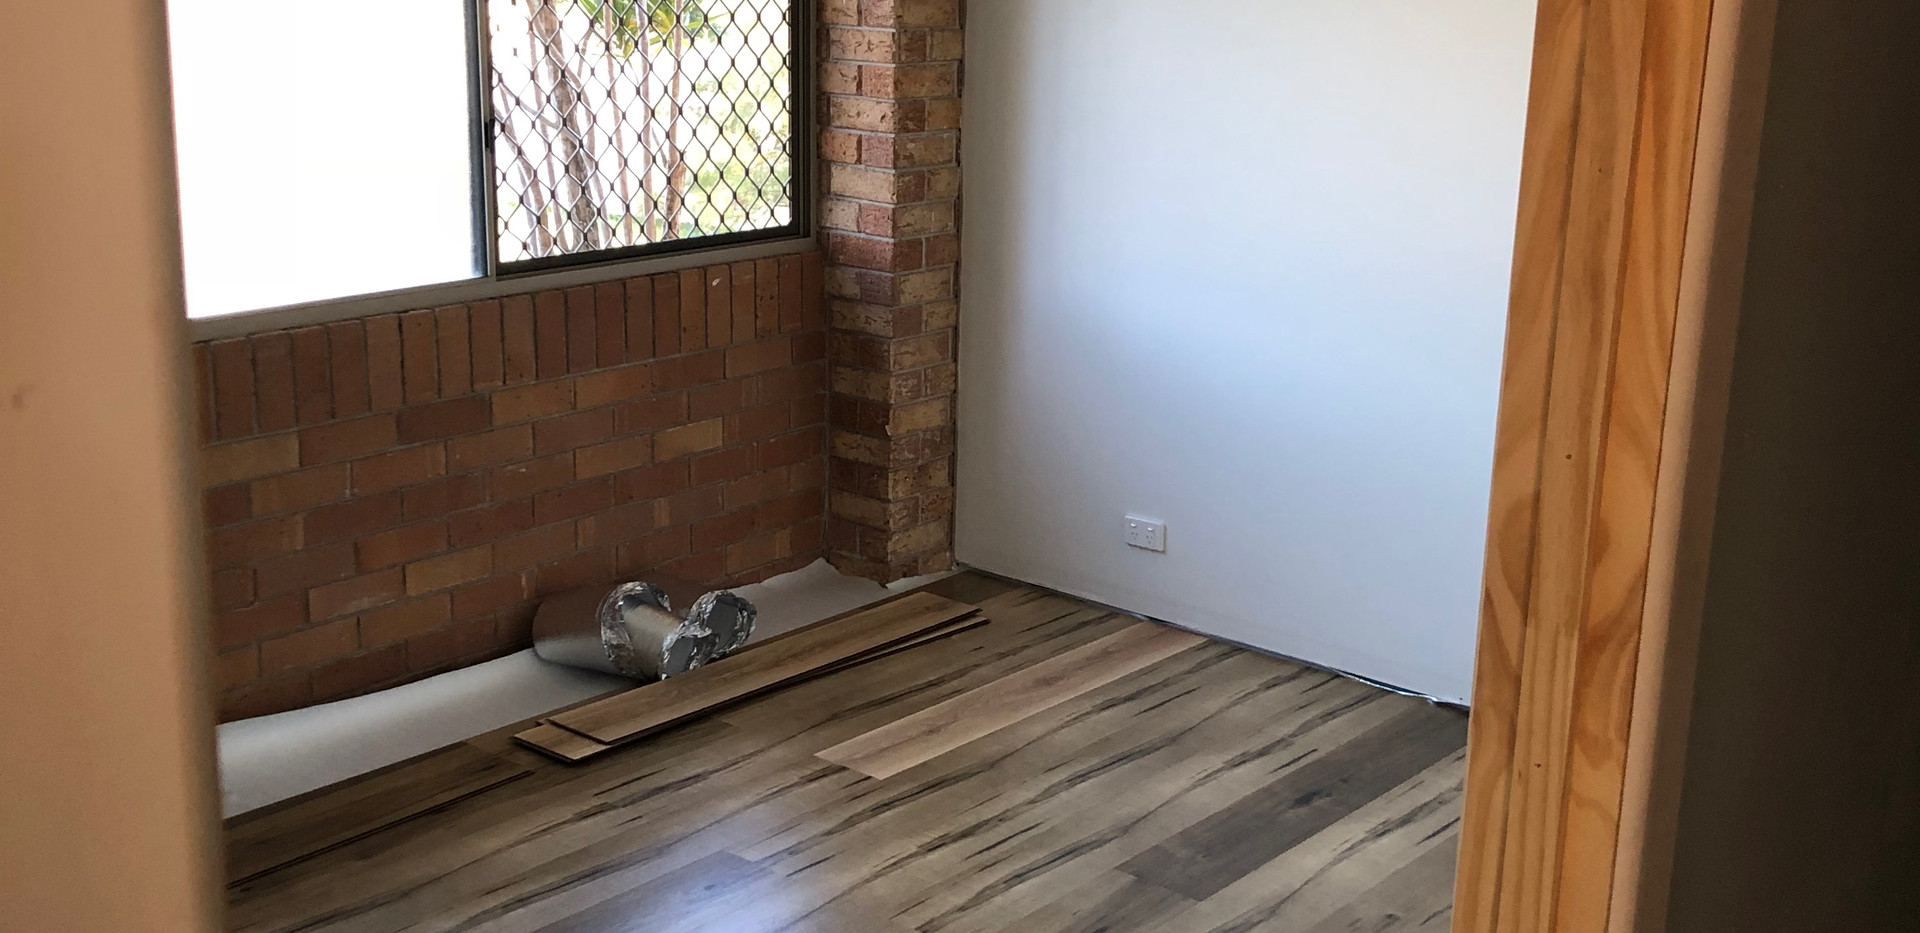 Wall Construction and Floating Floor